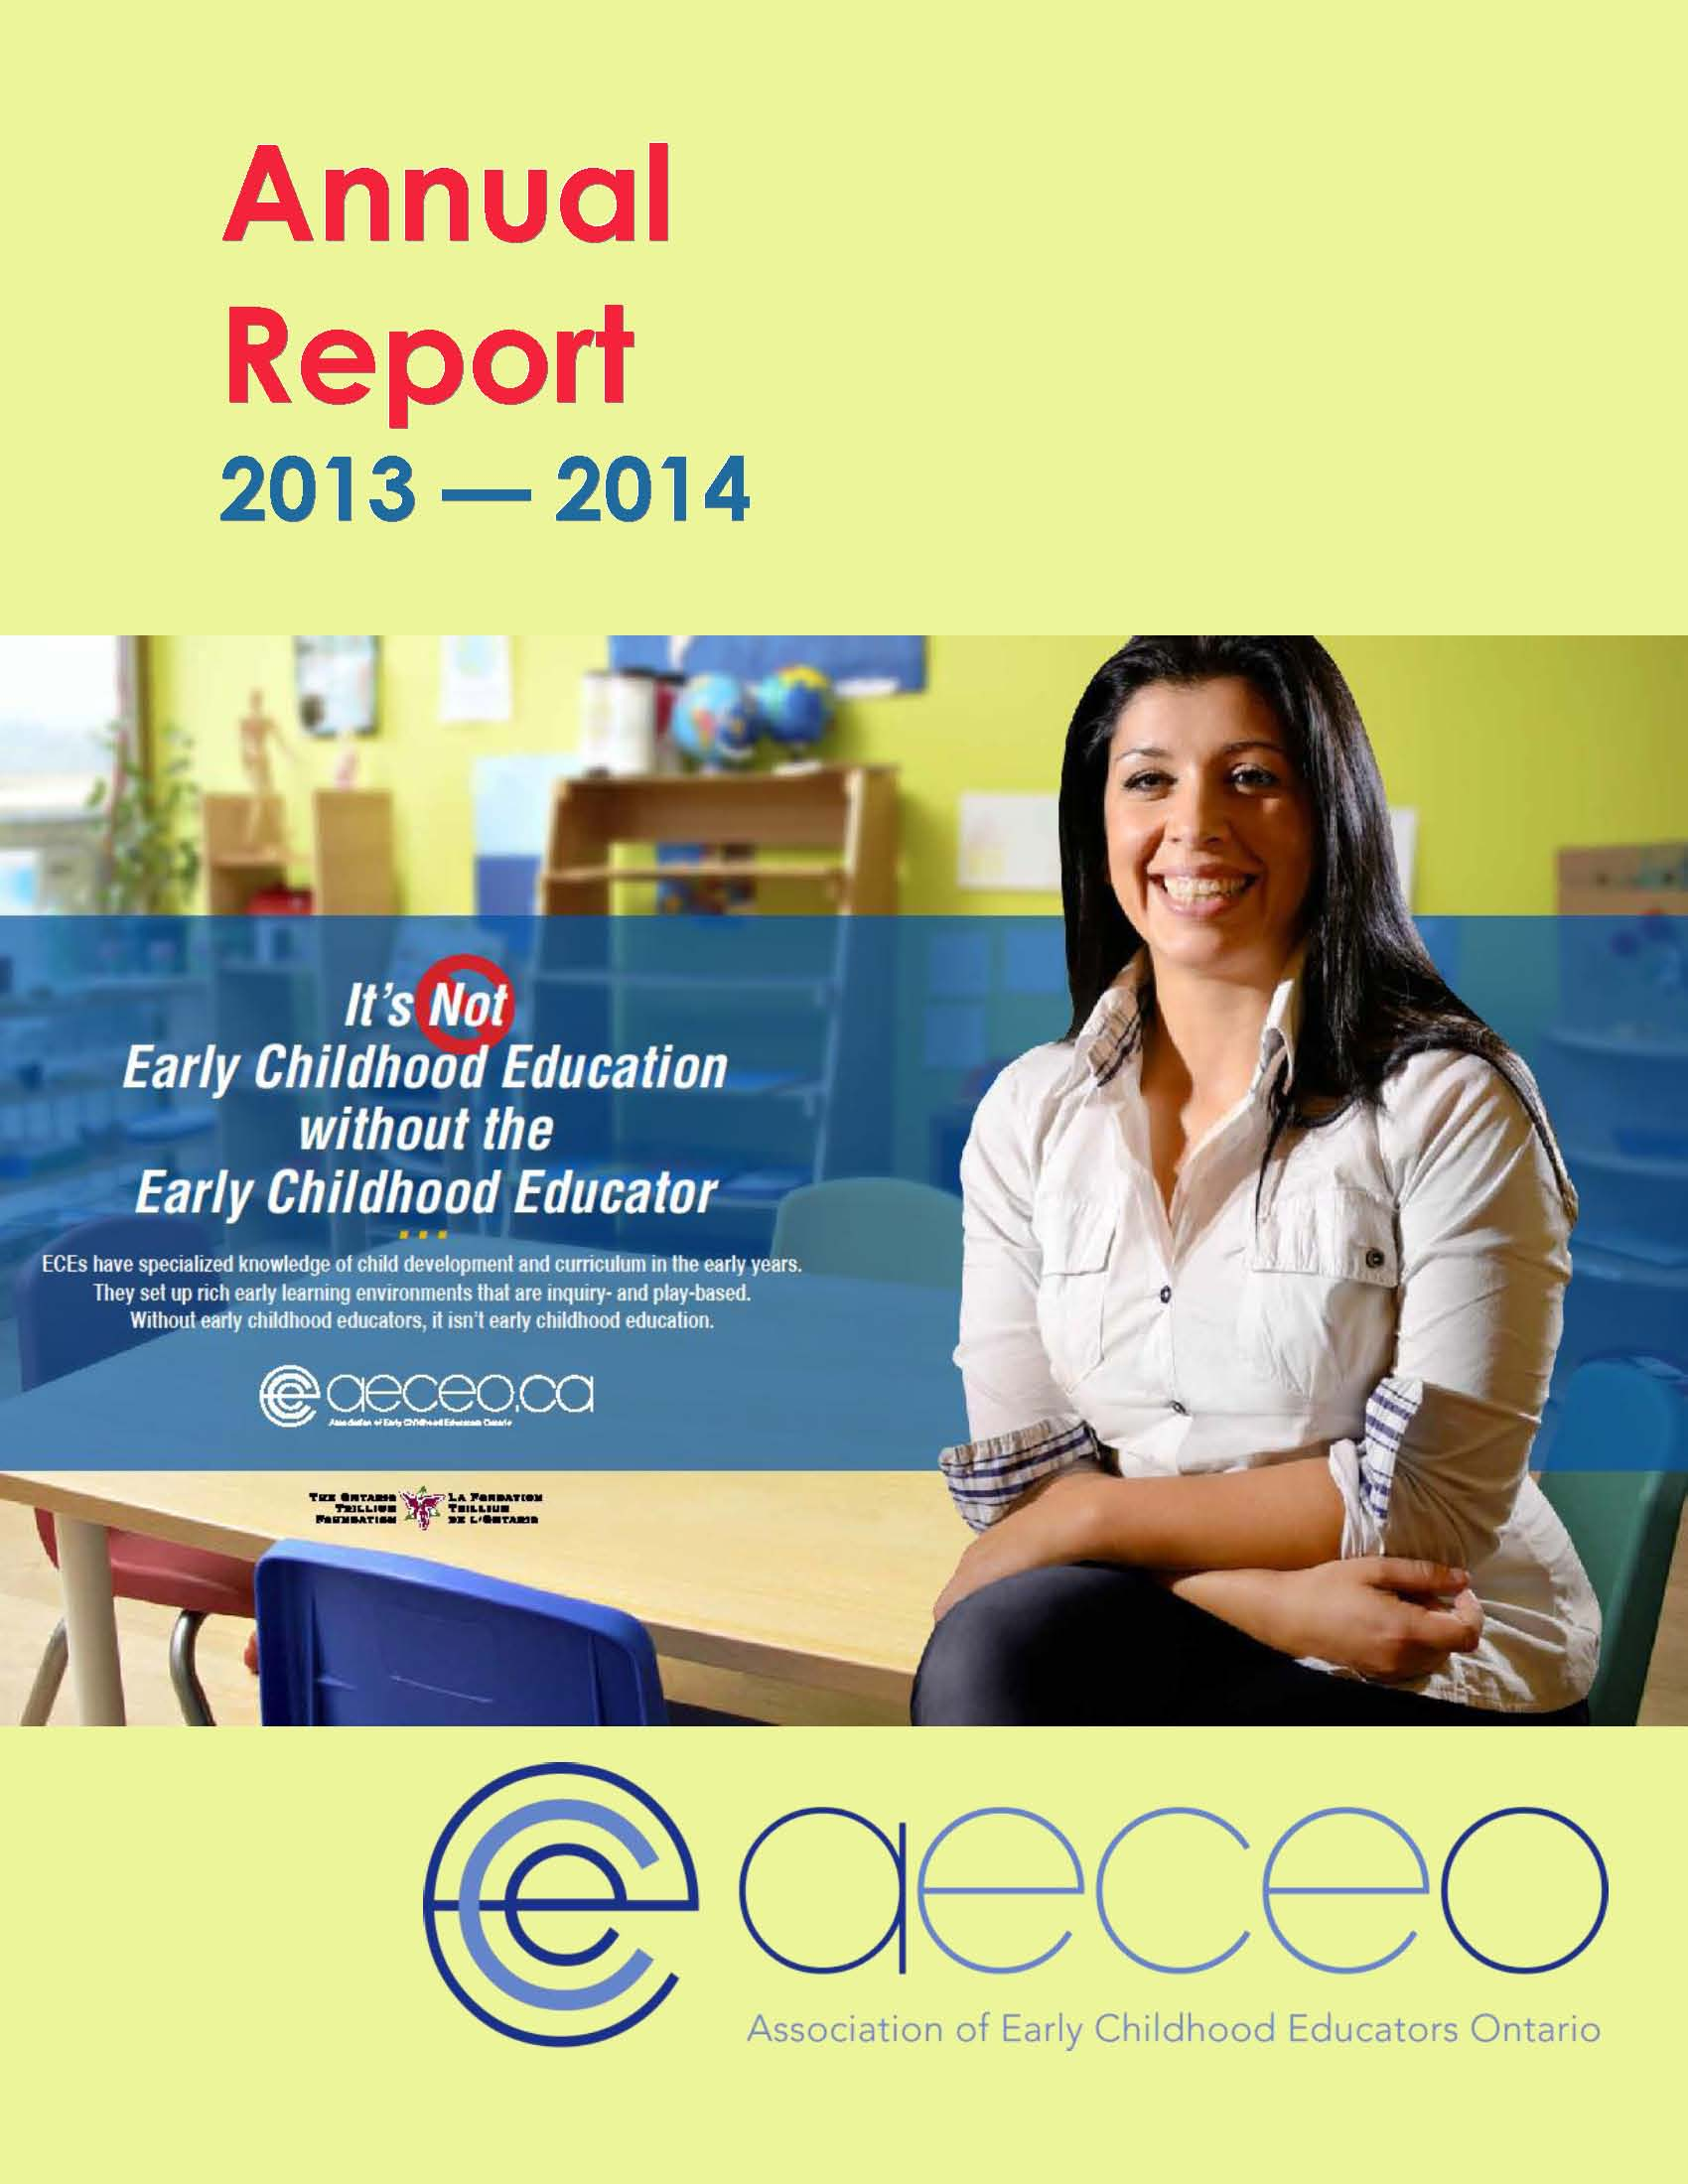 AECEO_AnnualReport2013-2014_1.jpg